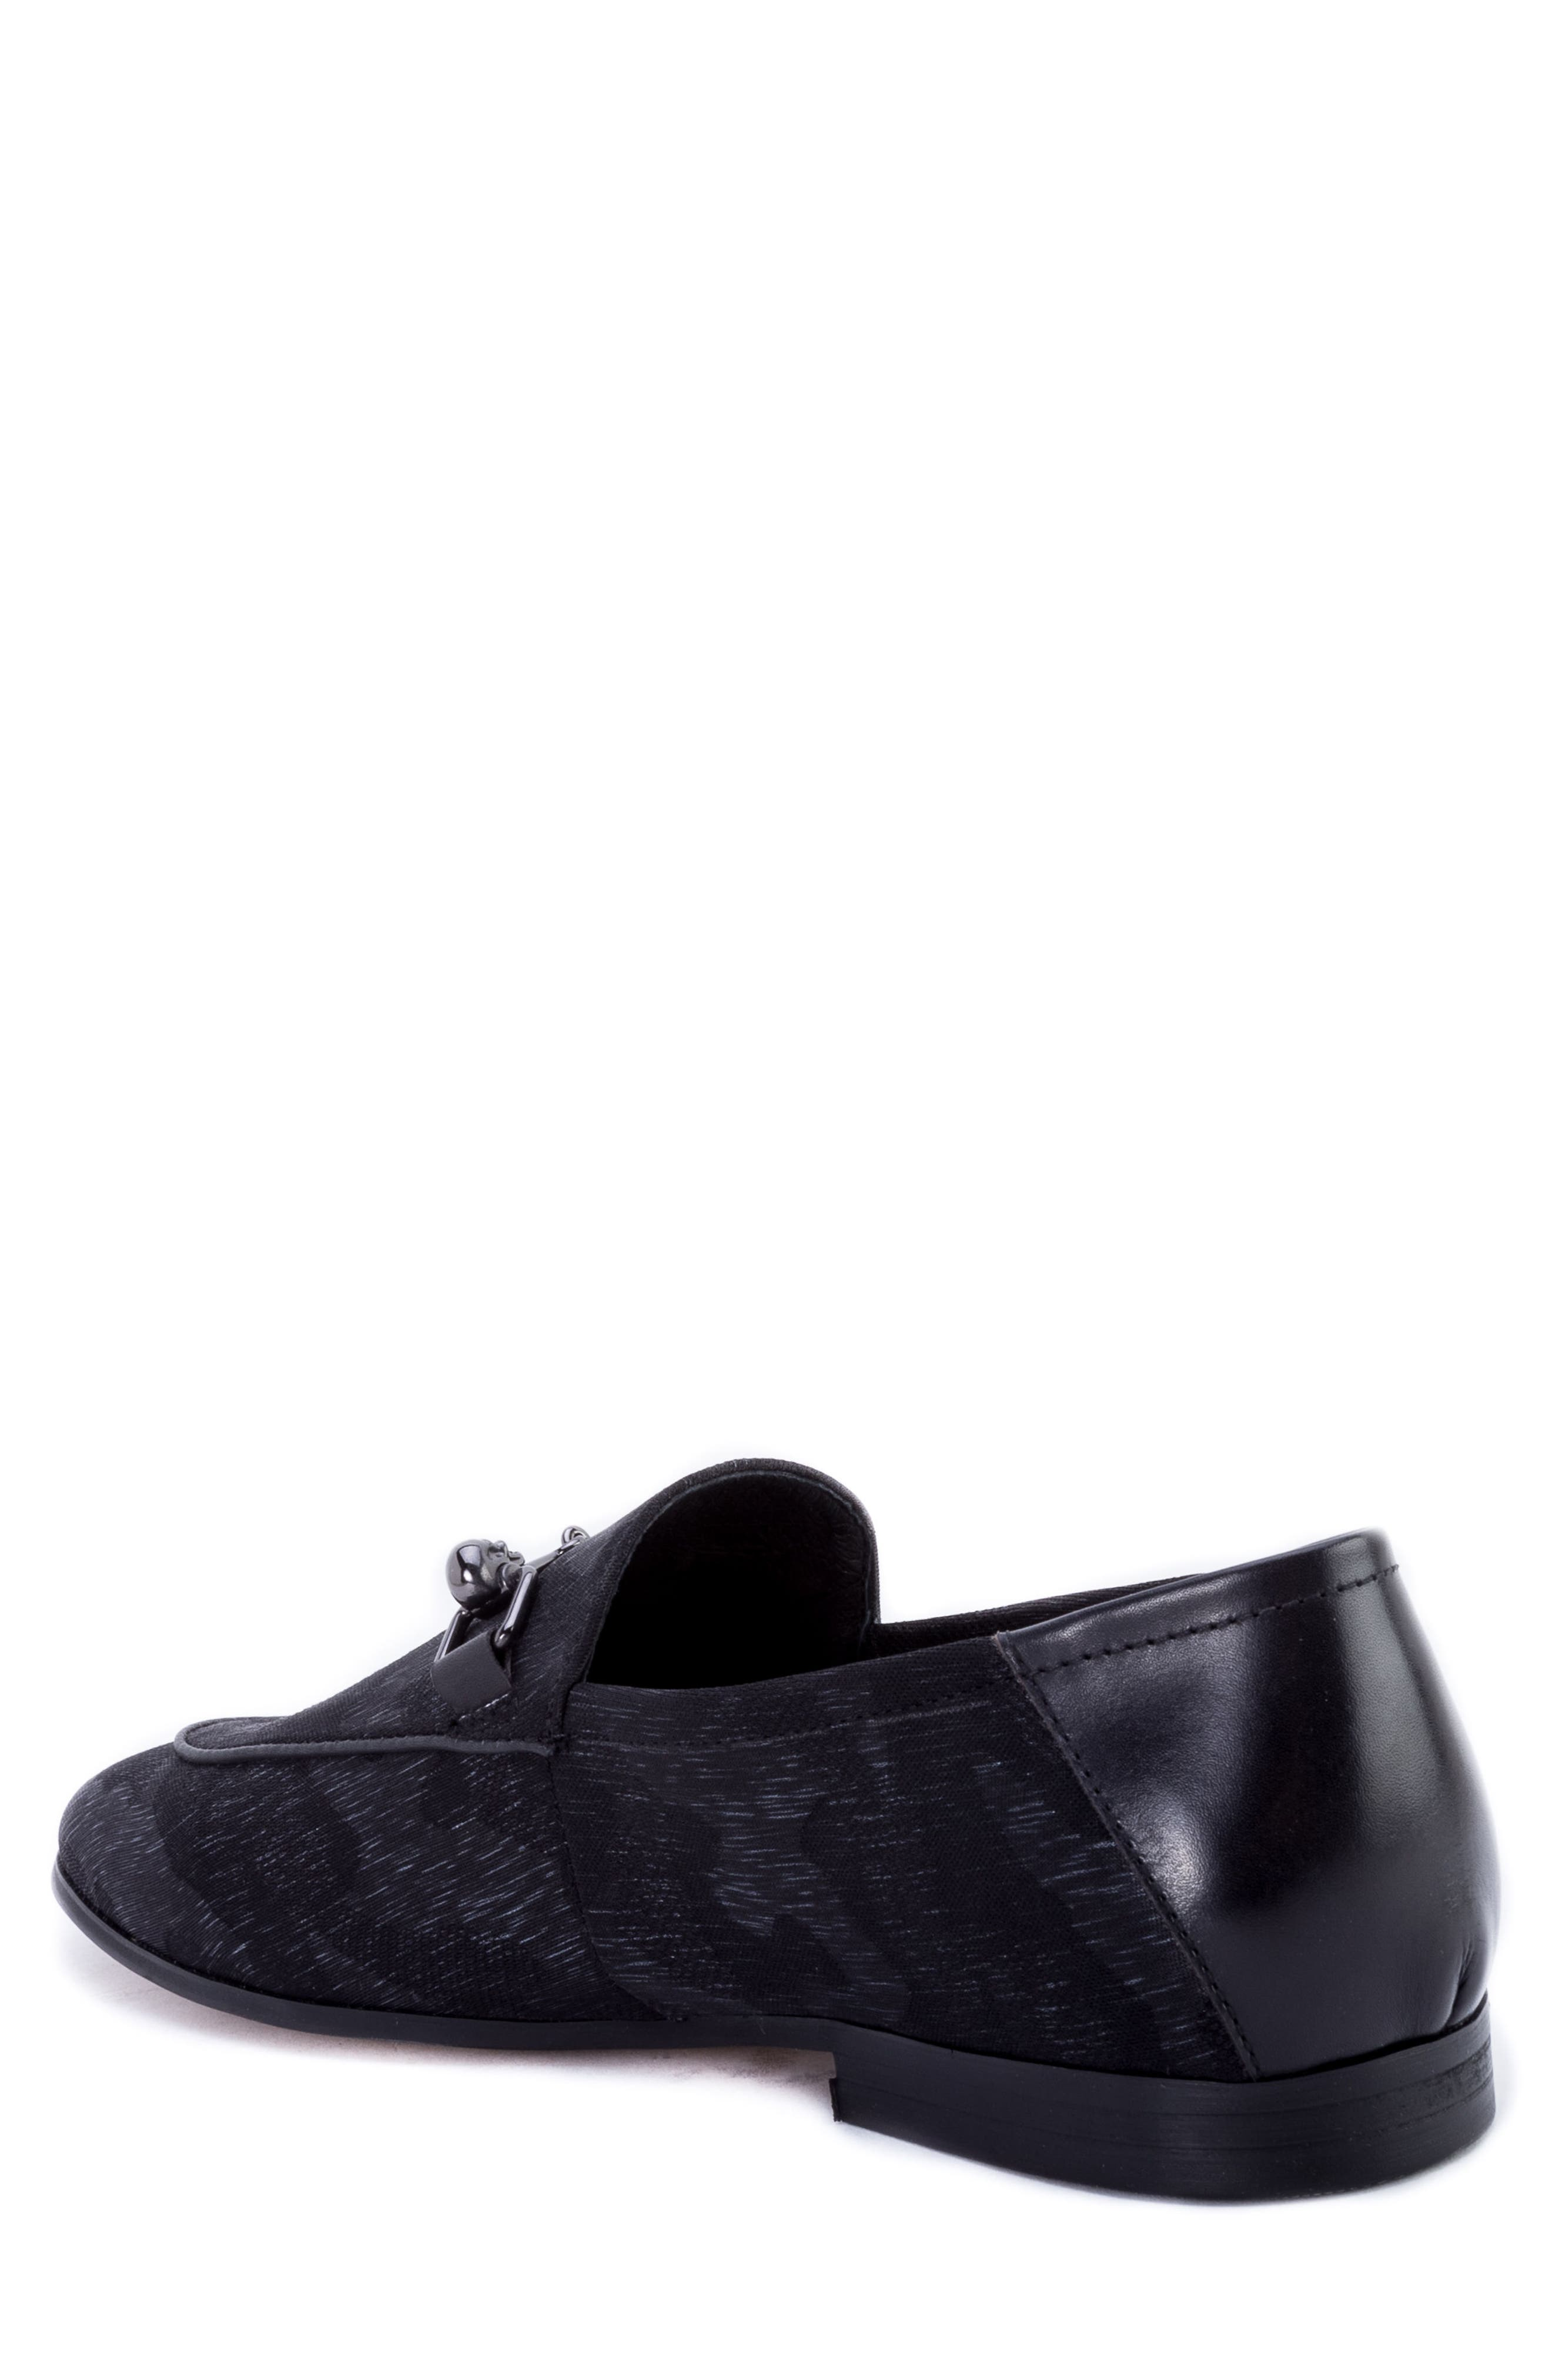 Barton Camouflage Bit Loafer,                             Alternate thumbnail 2, color,                             GREY FABRIC